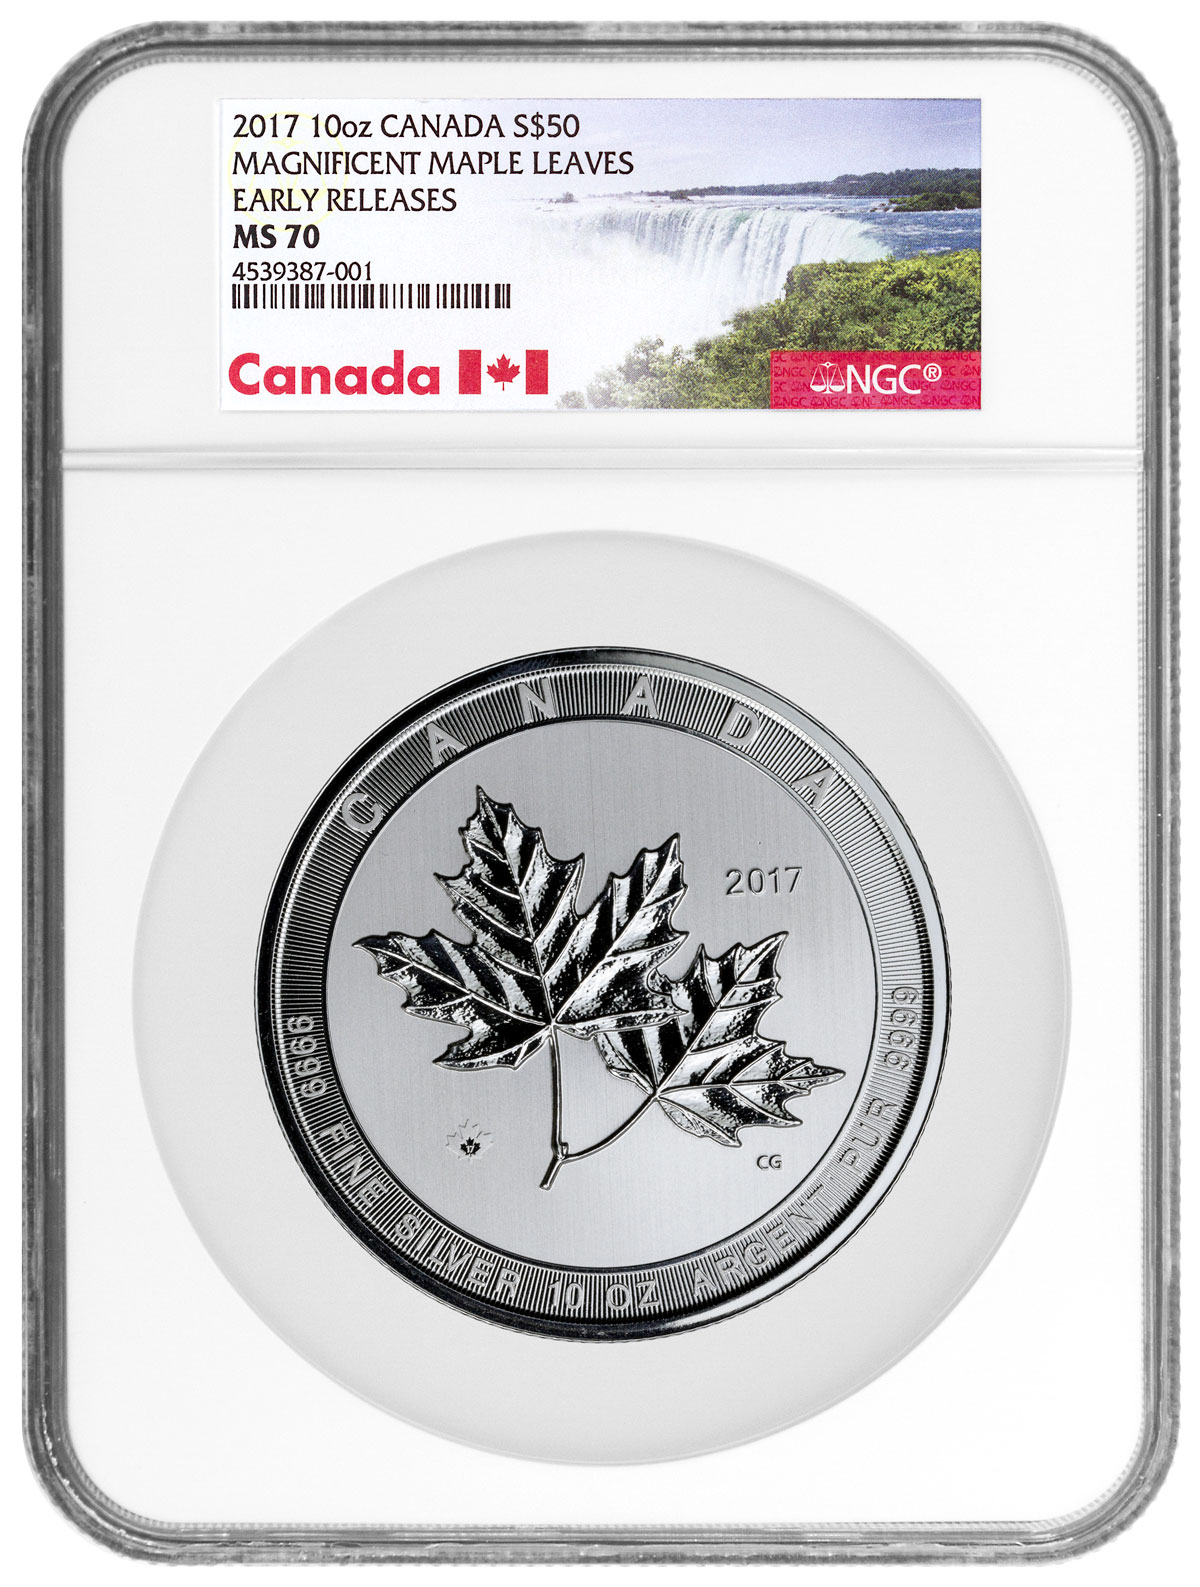 2017 Canada Magnificent Maple Leaves 10 Oz Silver 50 Coin